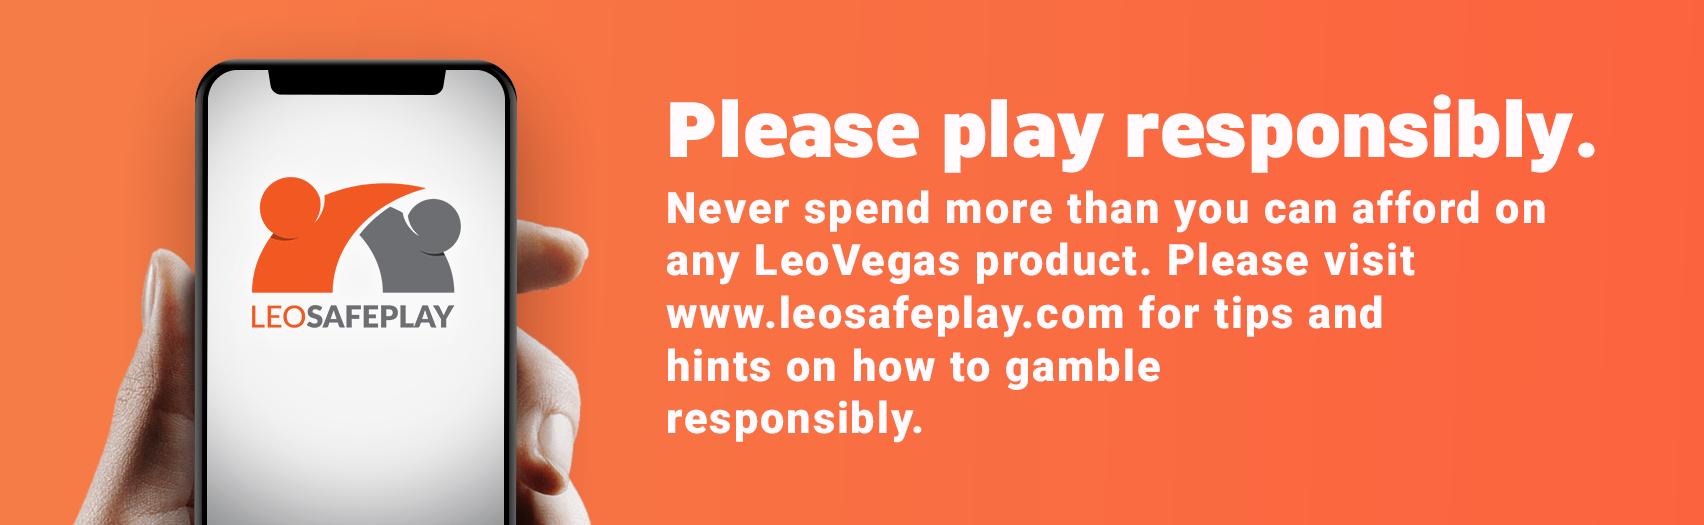 All the Casino, Sports & Live Casino Promotions at LeoVegas